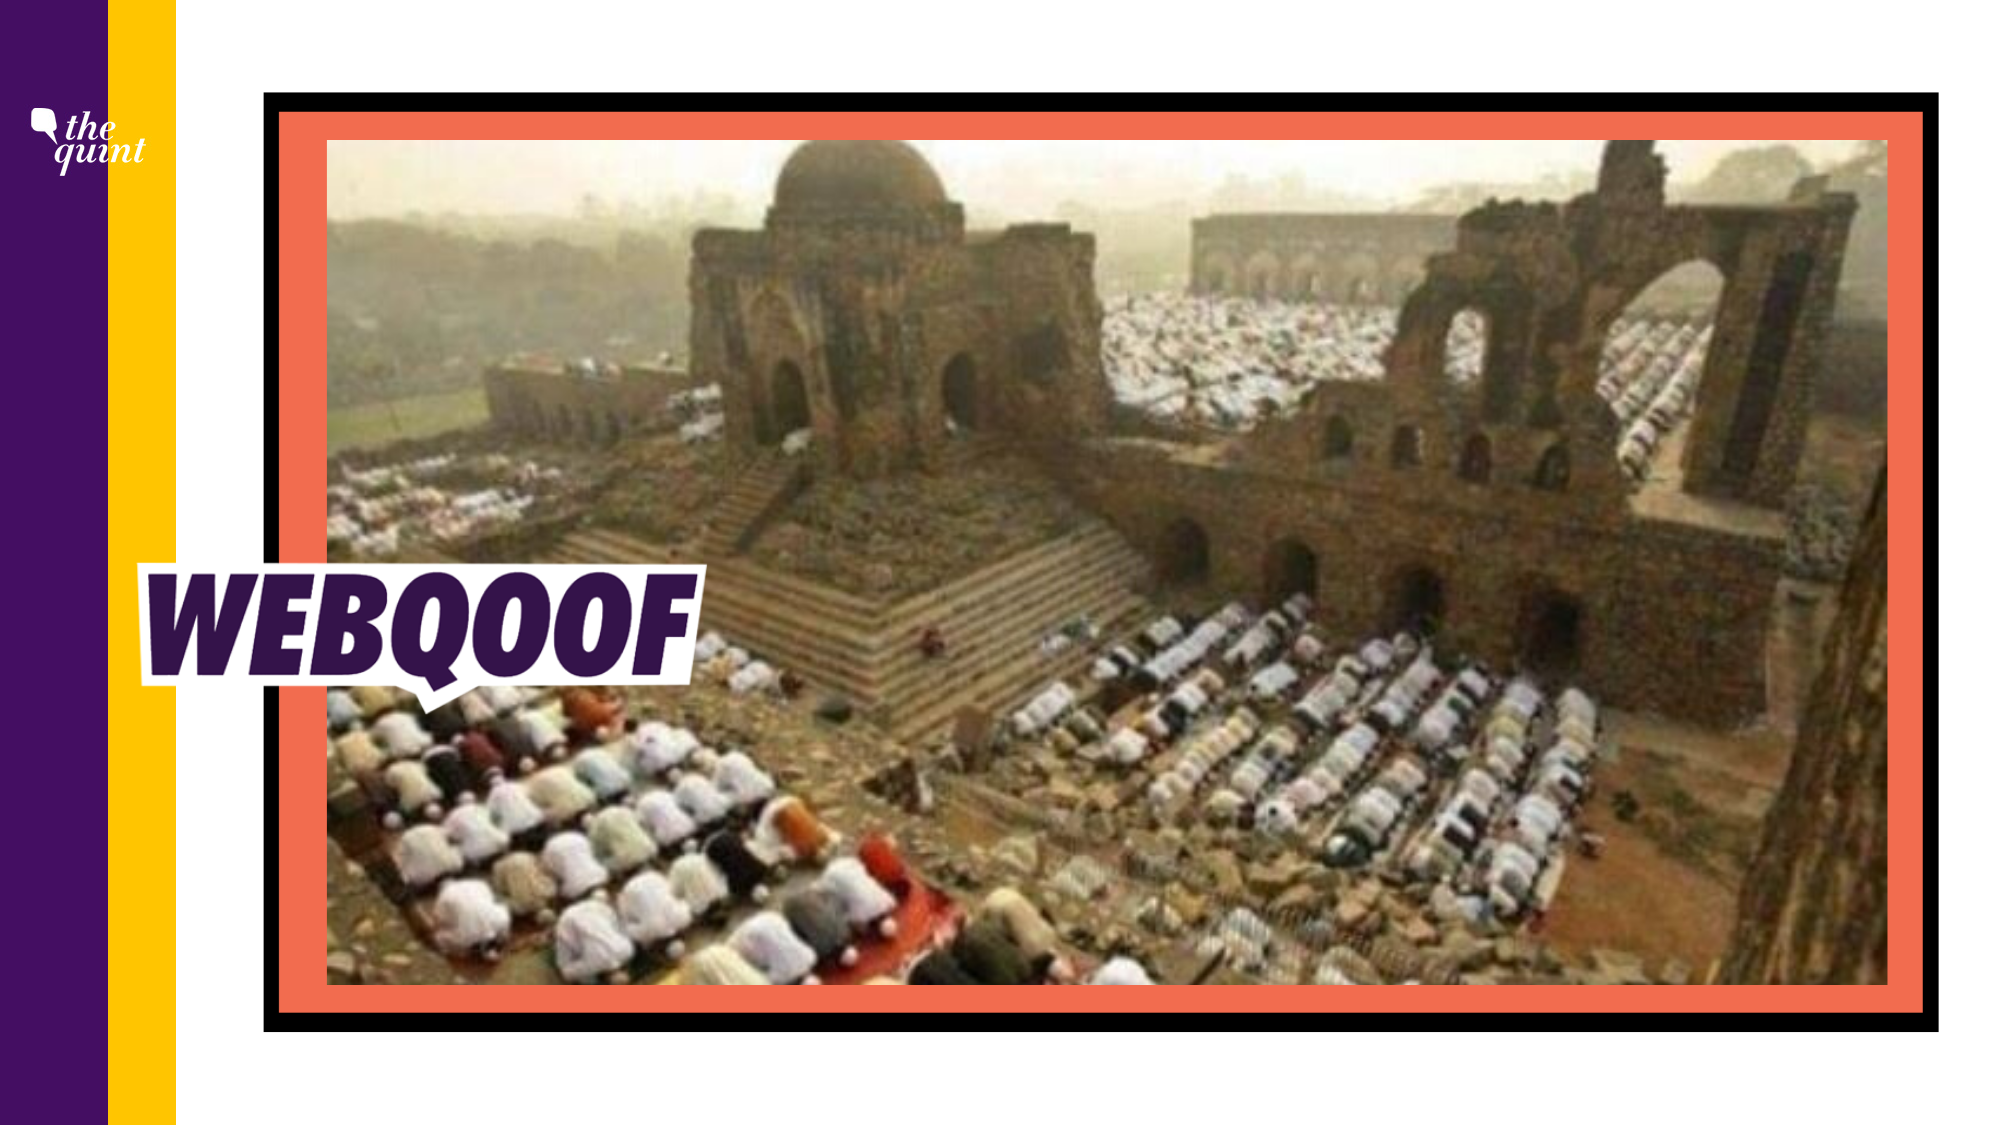 Last Namaz Offered at Babri Masjid Site? No, Image Is From Delhi